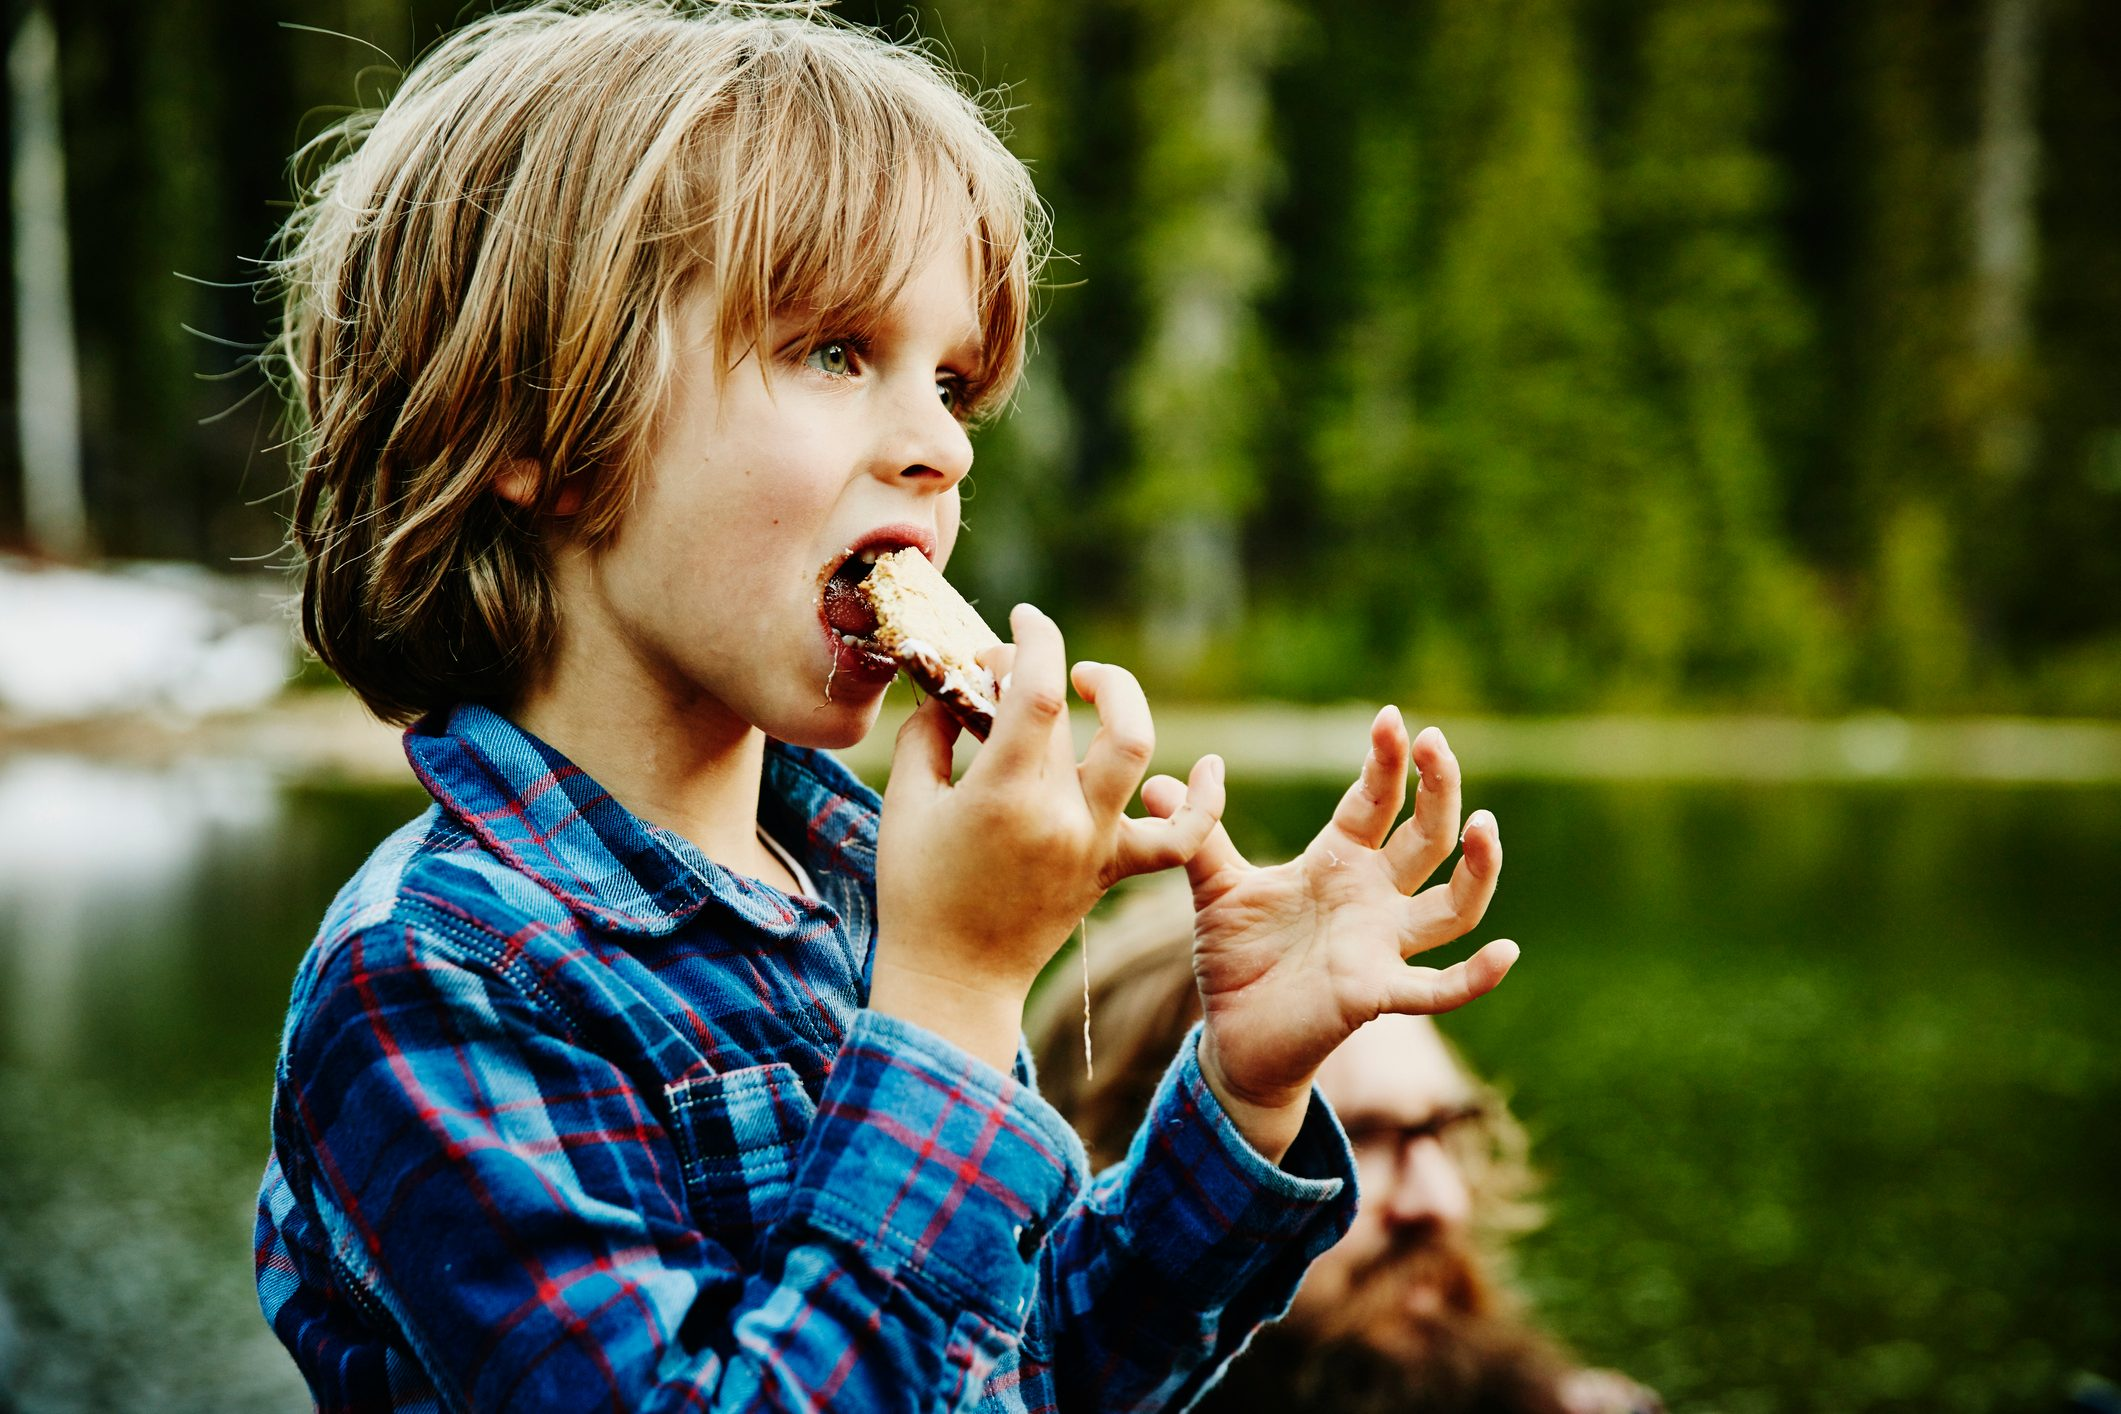 Young boy eating smore while camping with family